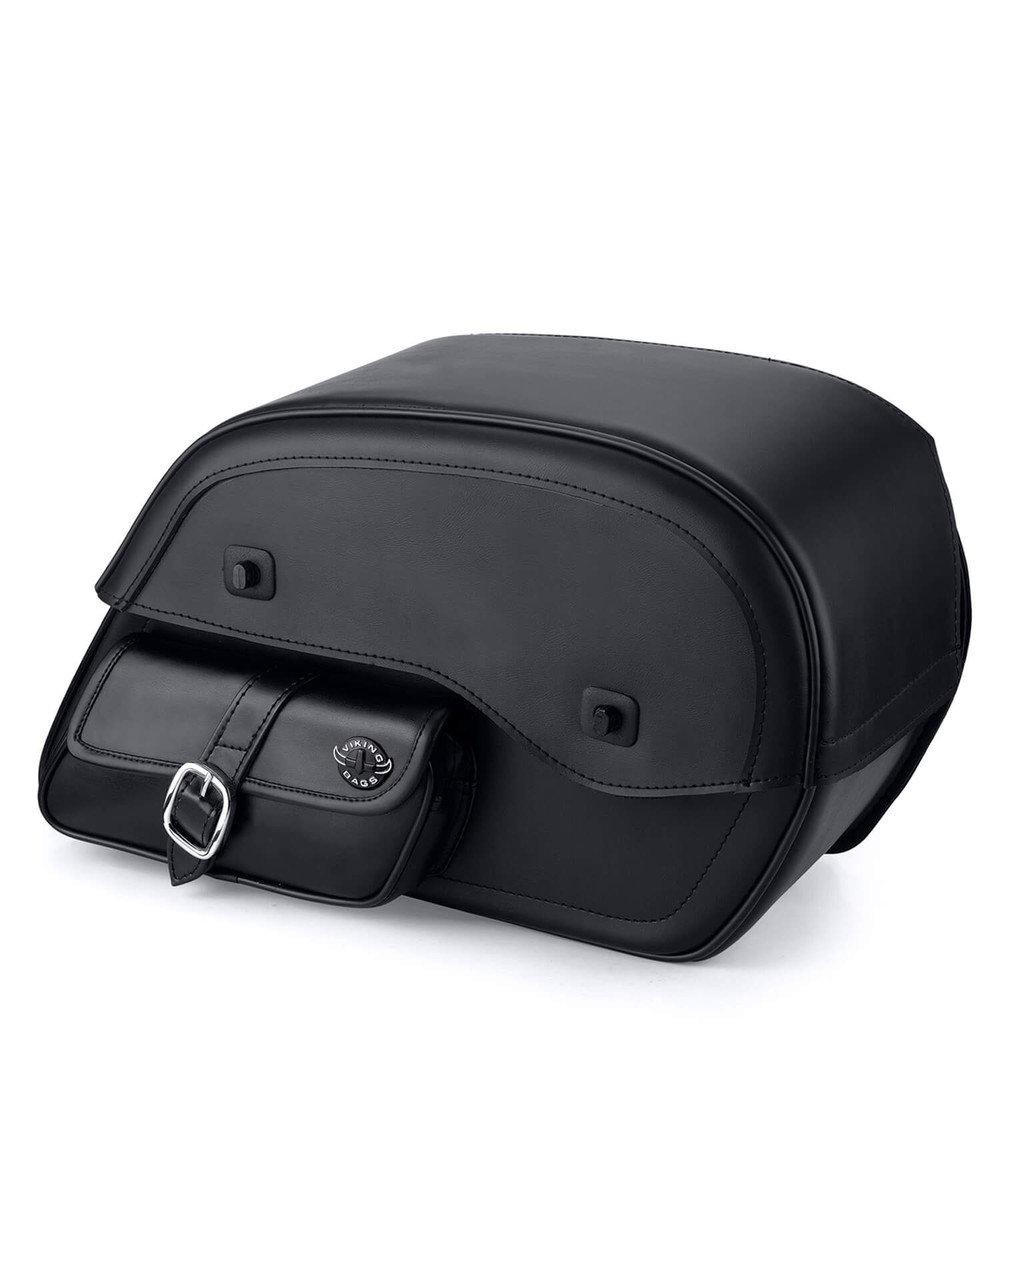 Indian Scout Sixty SS Side Pocket Motorcycle Saddlebags Main Bag View